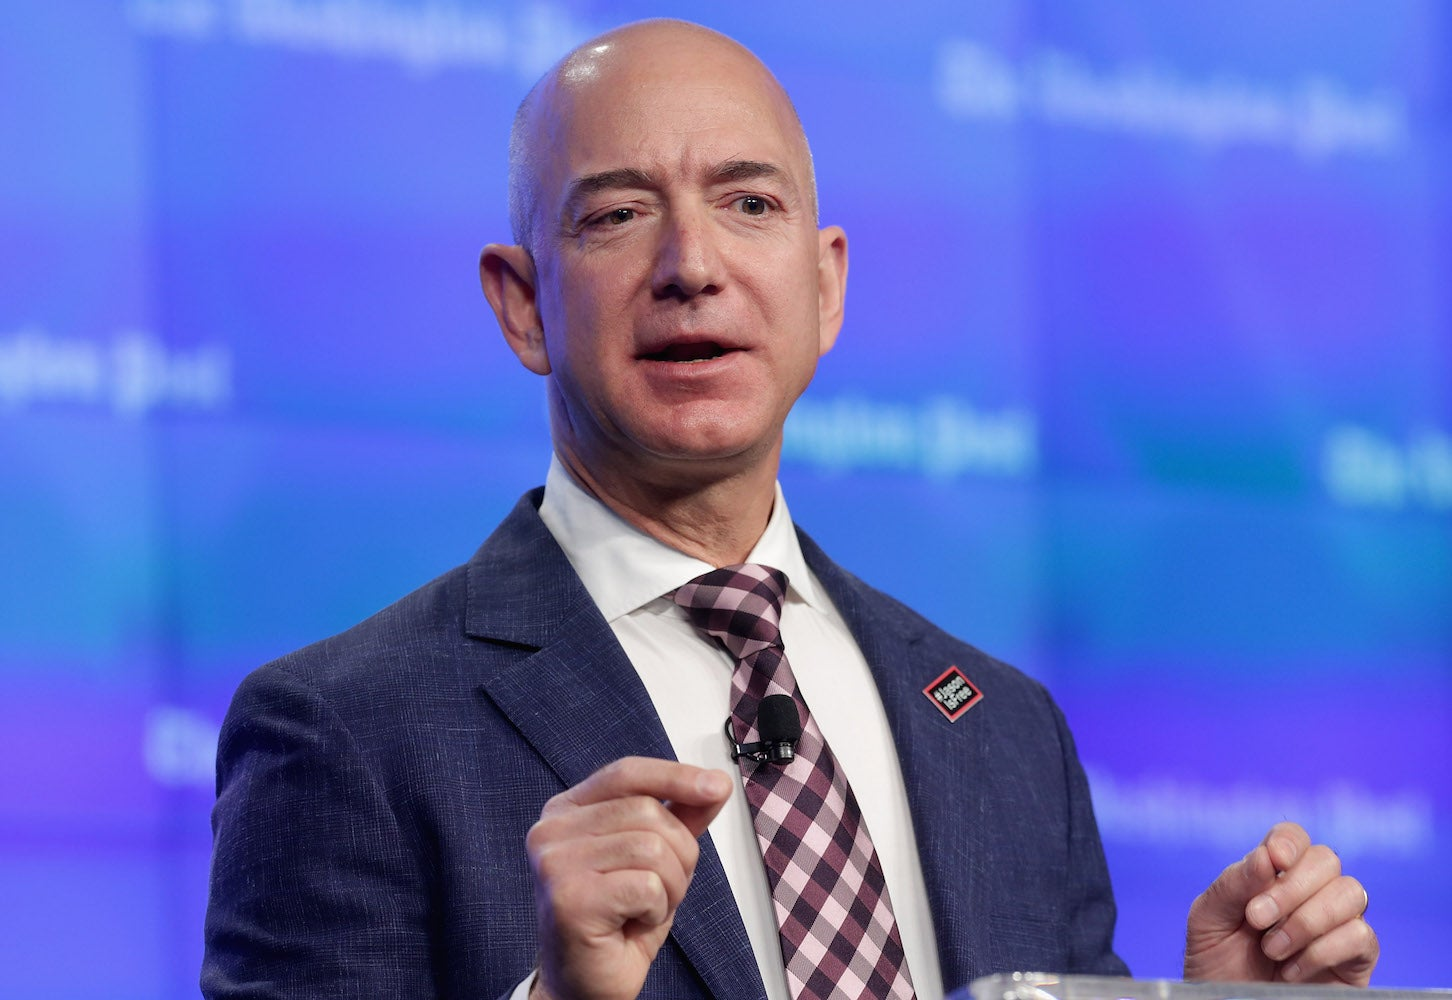 Amazon and Uber are proof that leadership still matters